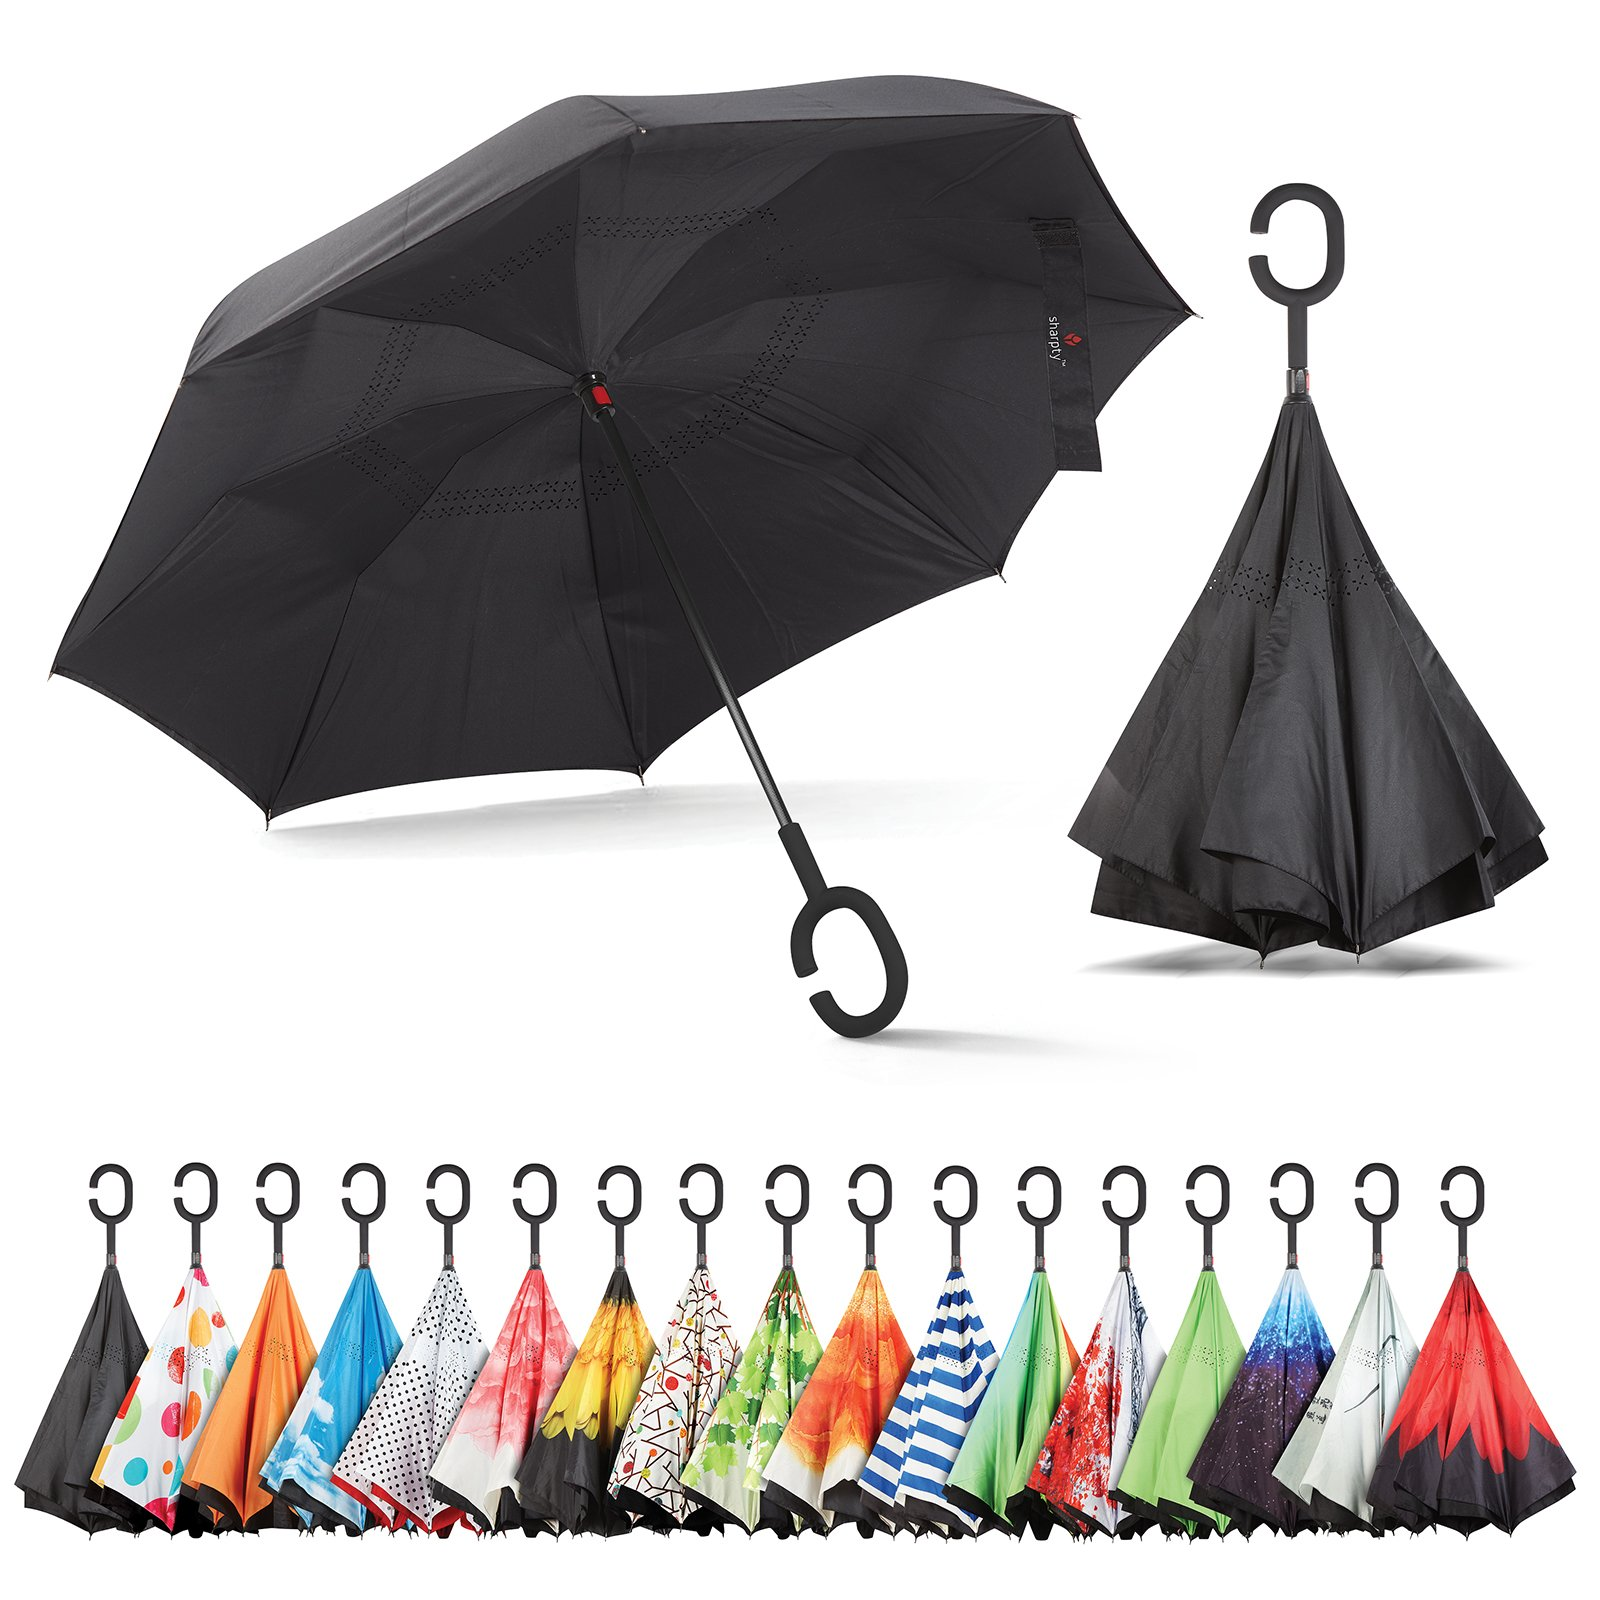 Sharpty Inverted Umbrella, Double Layer Windproof Umbrella, Reverse Umbrella, Umbrella with UV Protection, Upside Down Umbrella with C-Shaped Handle by Sharpty